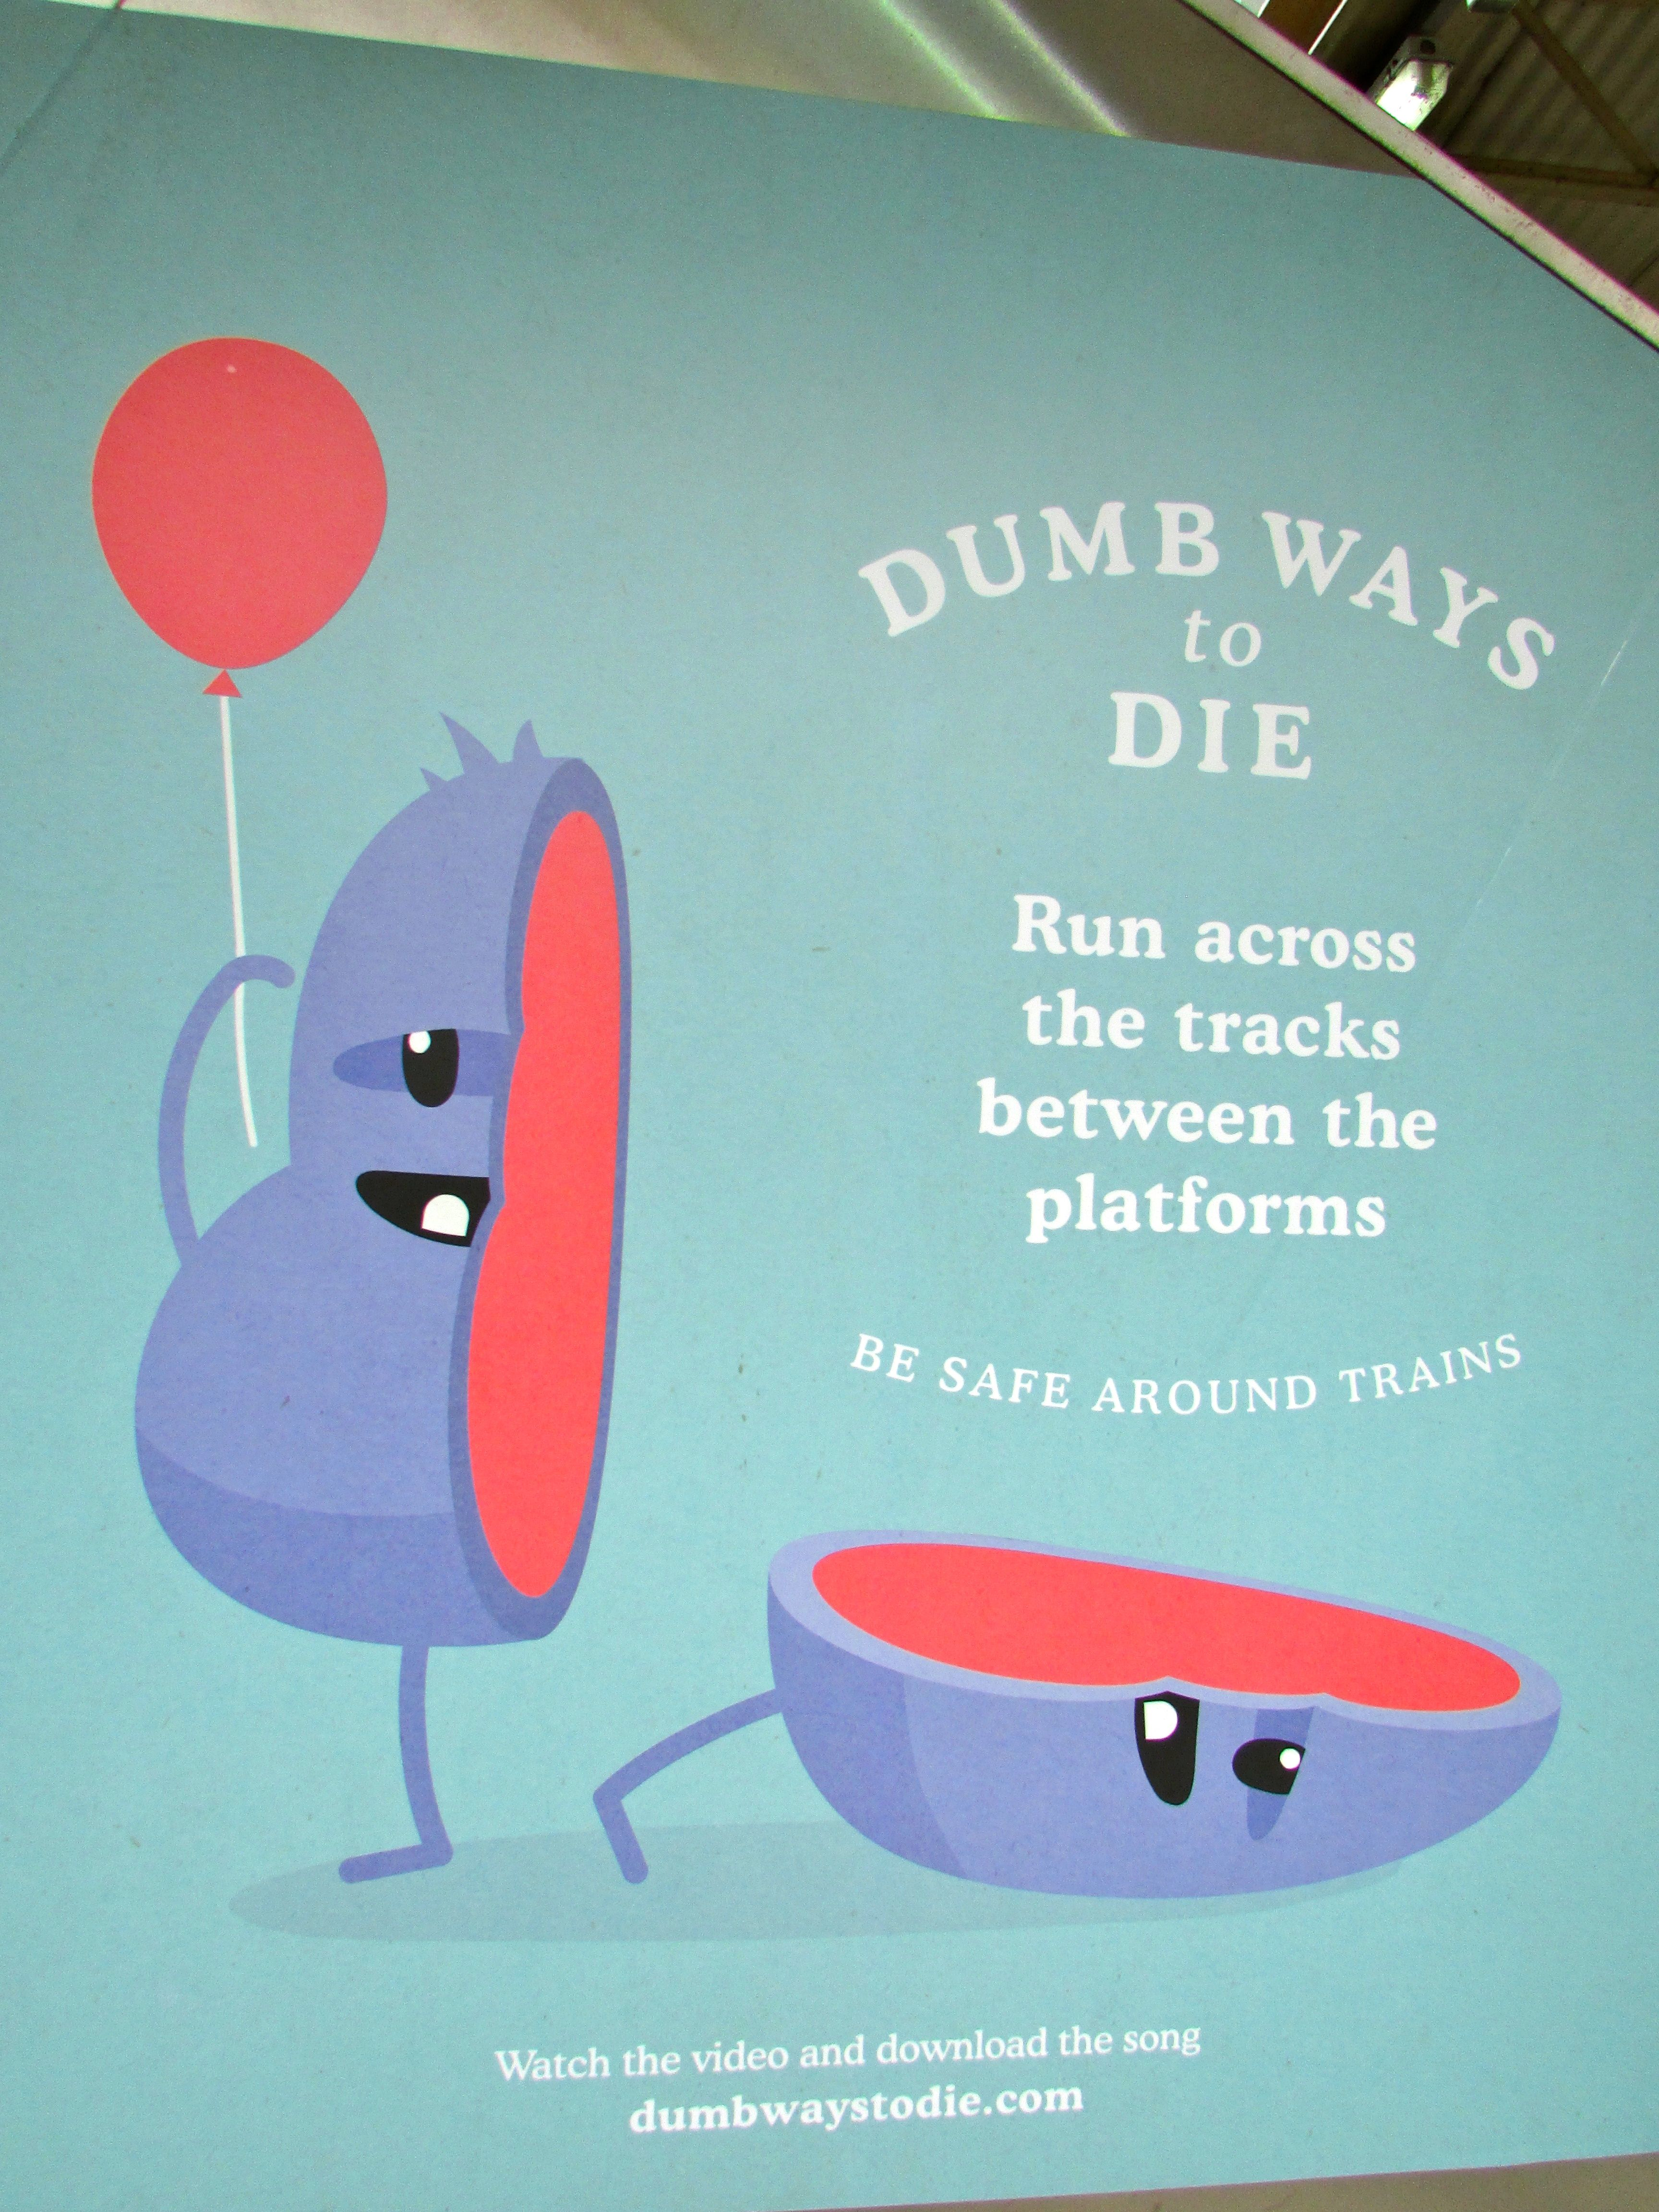 Signs Of The Times Ldquo Dumb Ways To Die Rdquo Ndash A Twisted Yet